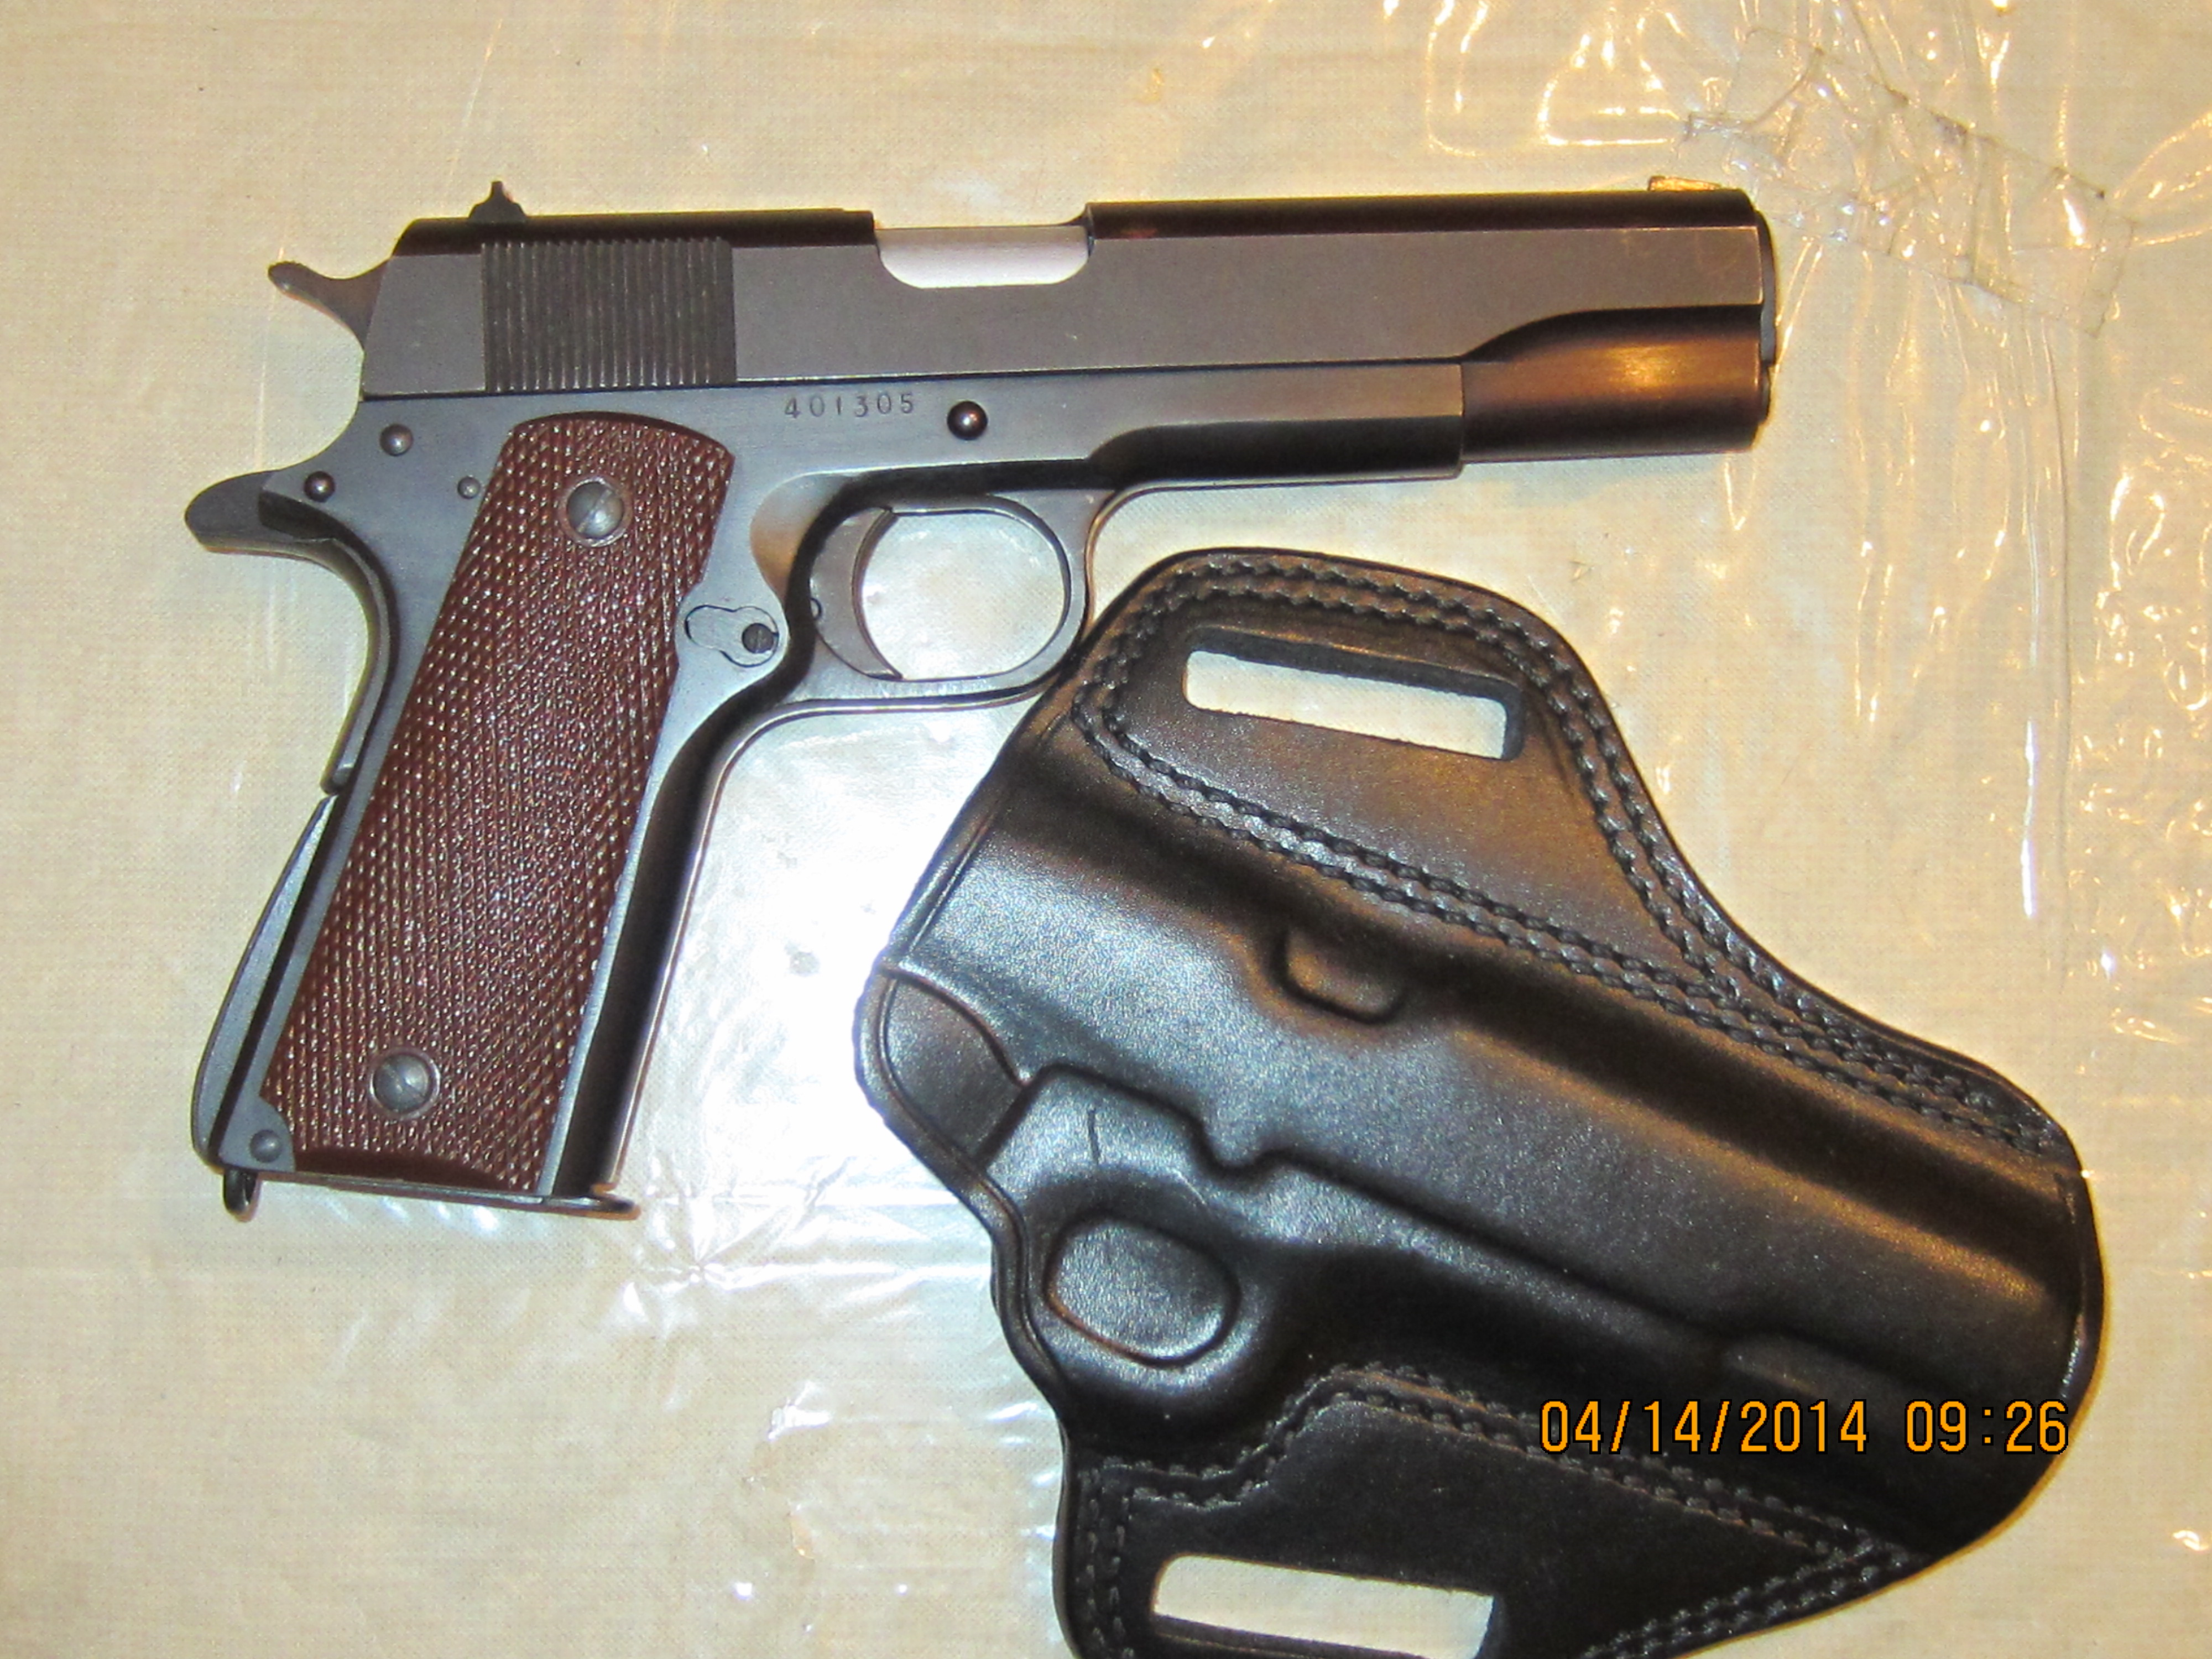 I knew I should not have bought  that 1911-img_0551.jpg